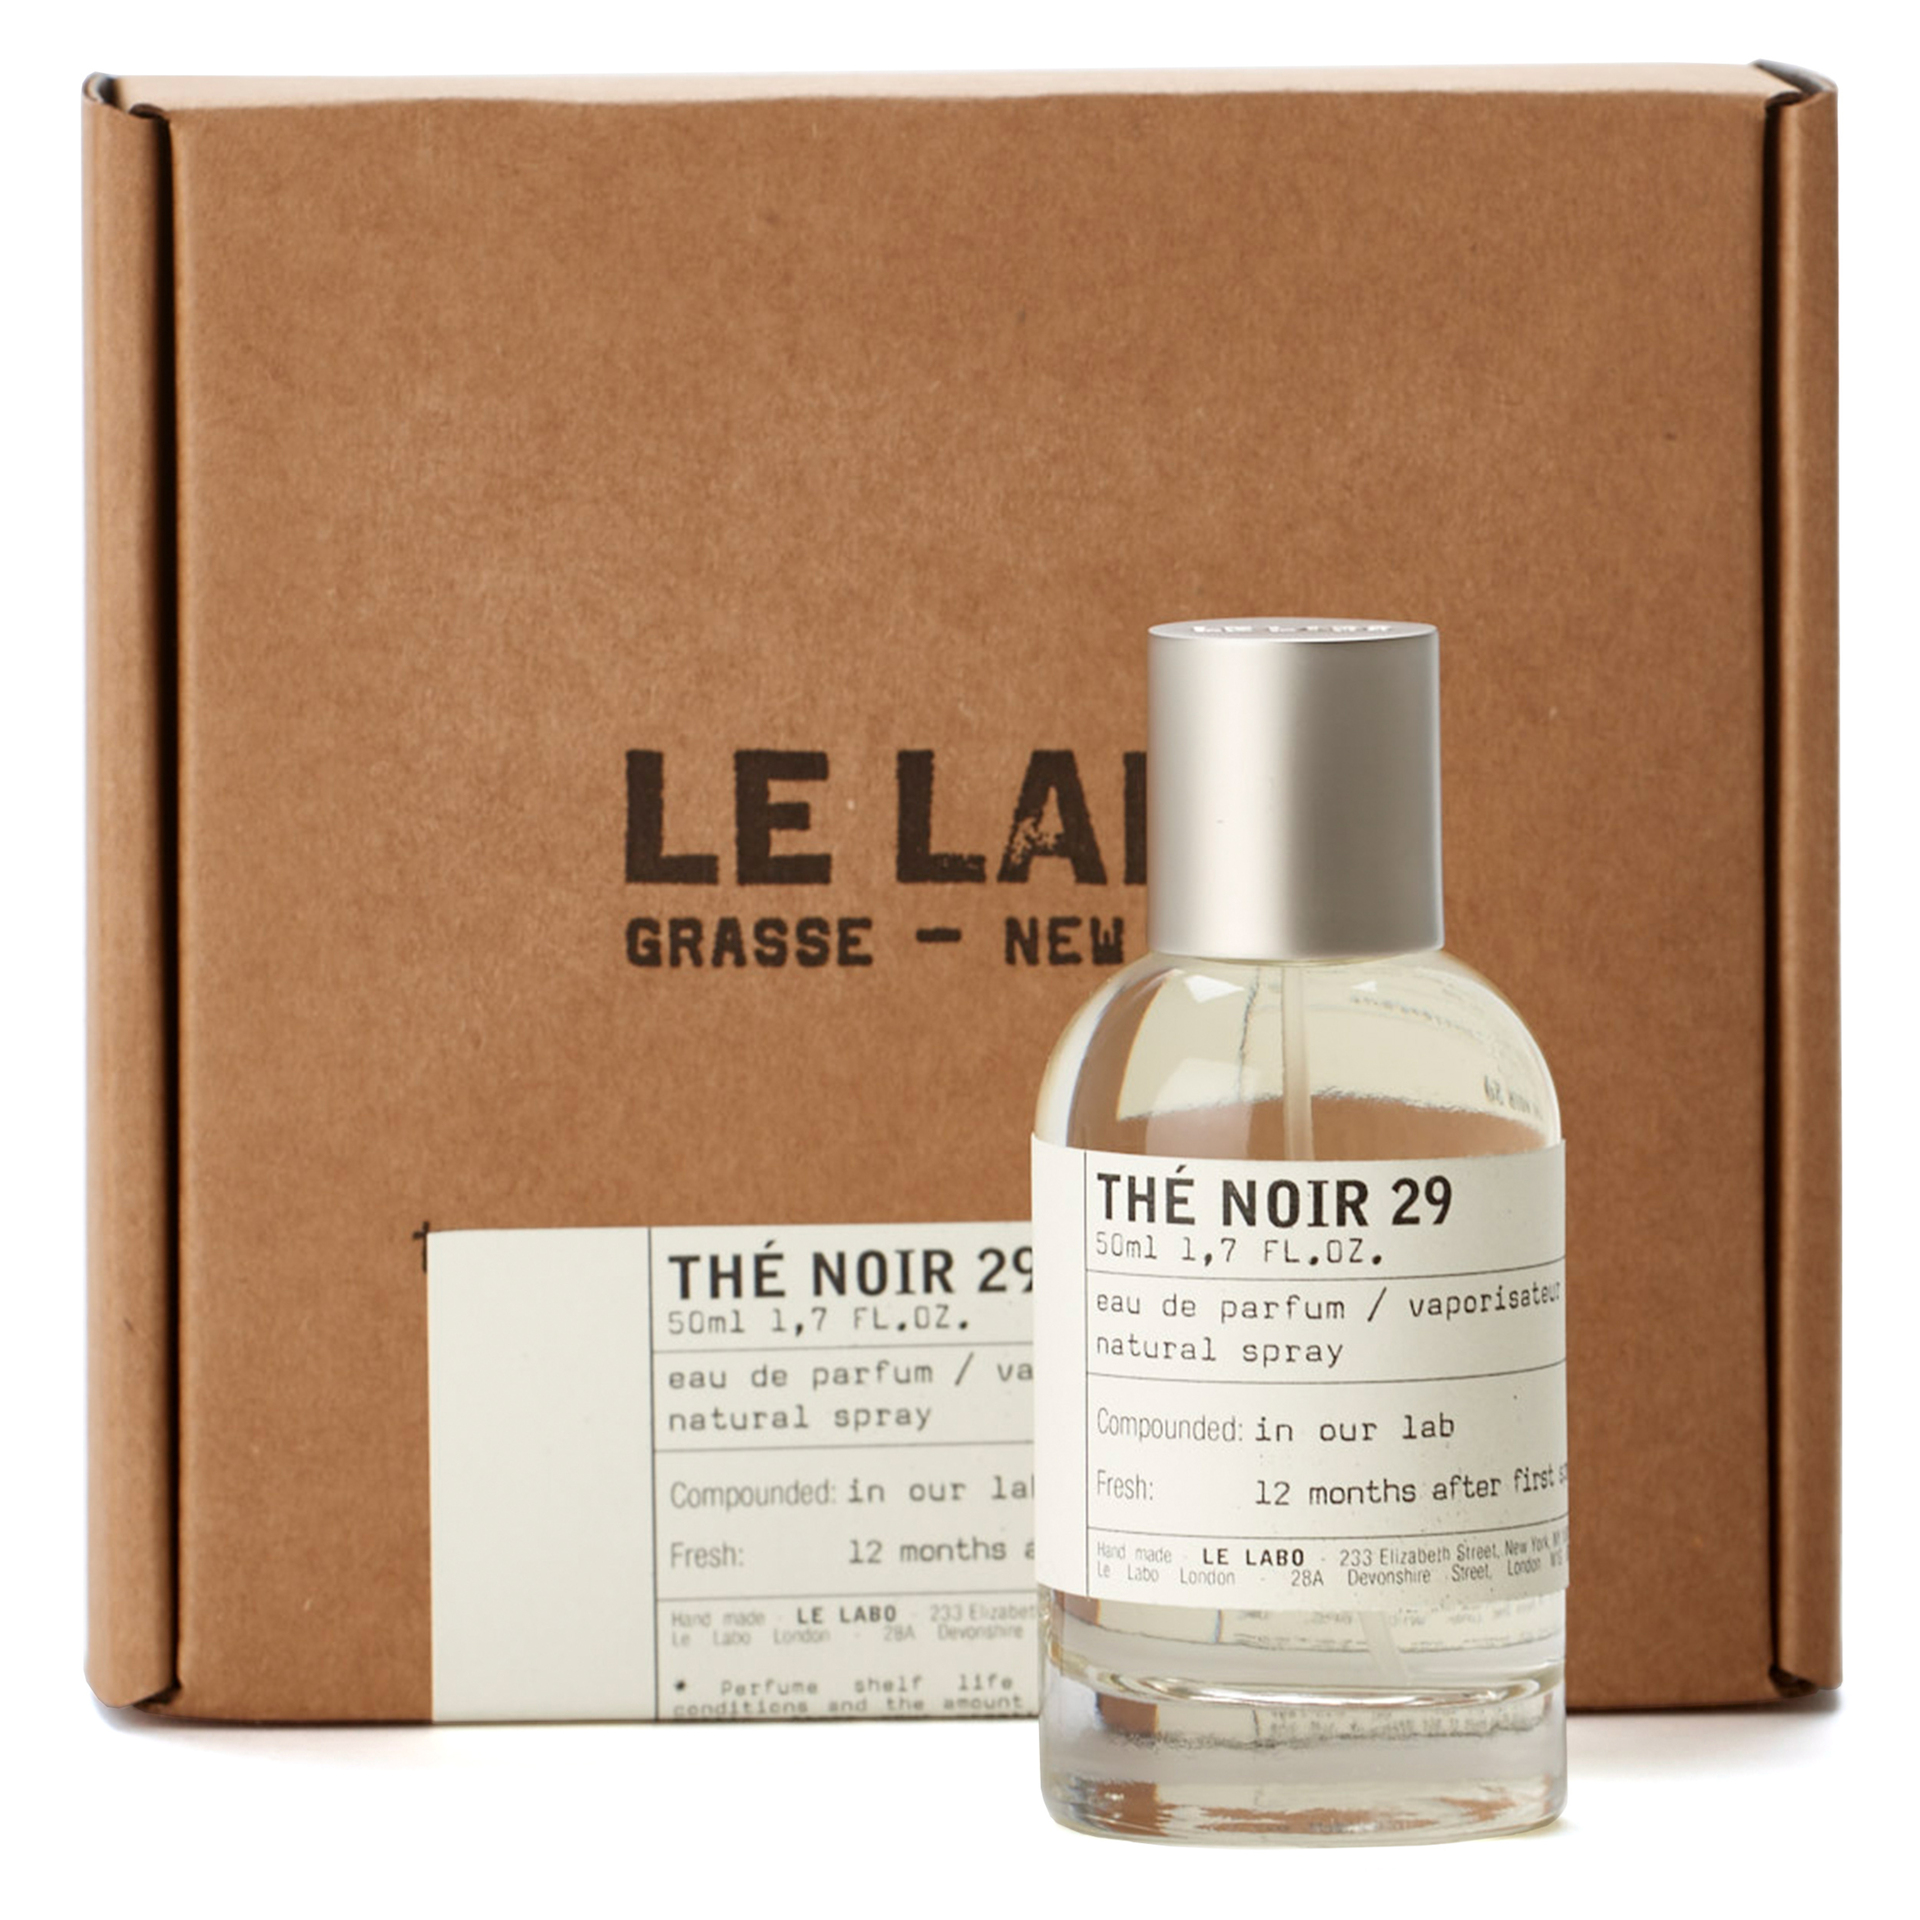 The noir 29 Edp 50 ml